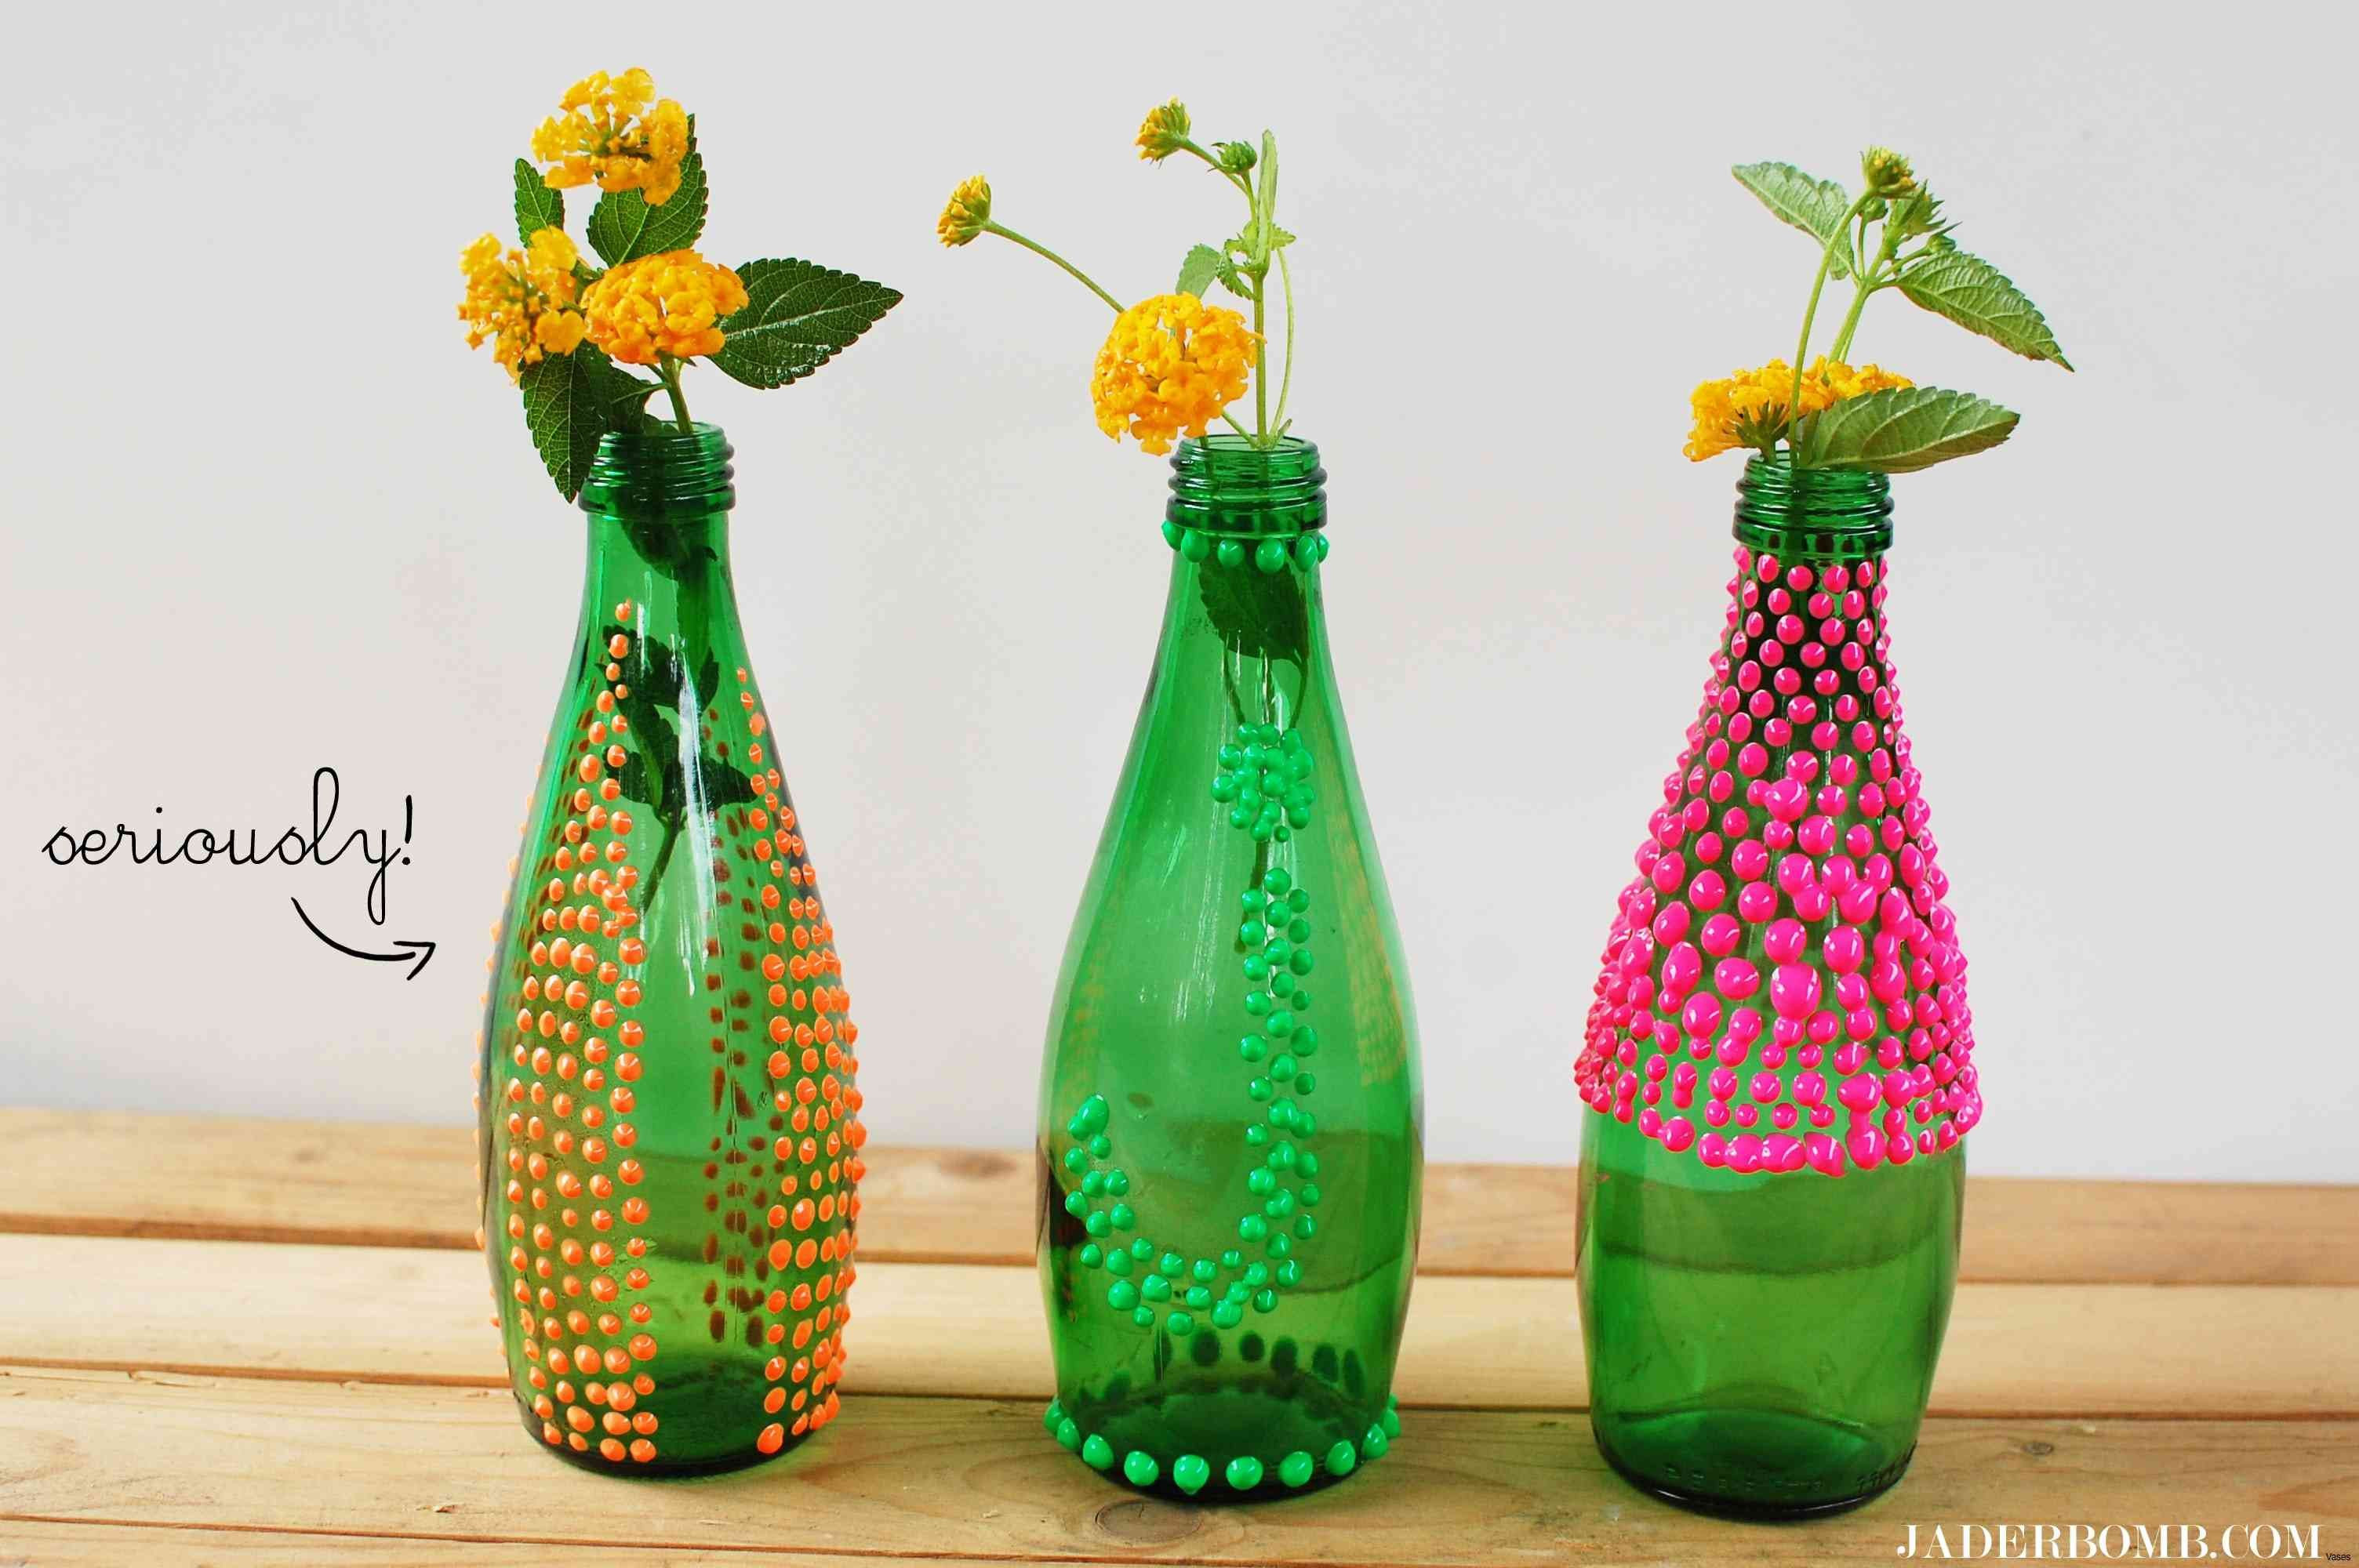 green glass bottle vase of 35 antique green glass vases the weekly world with regard to 39 elegant big flower vase